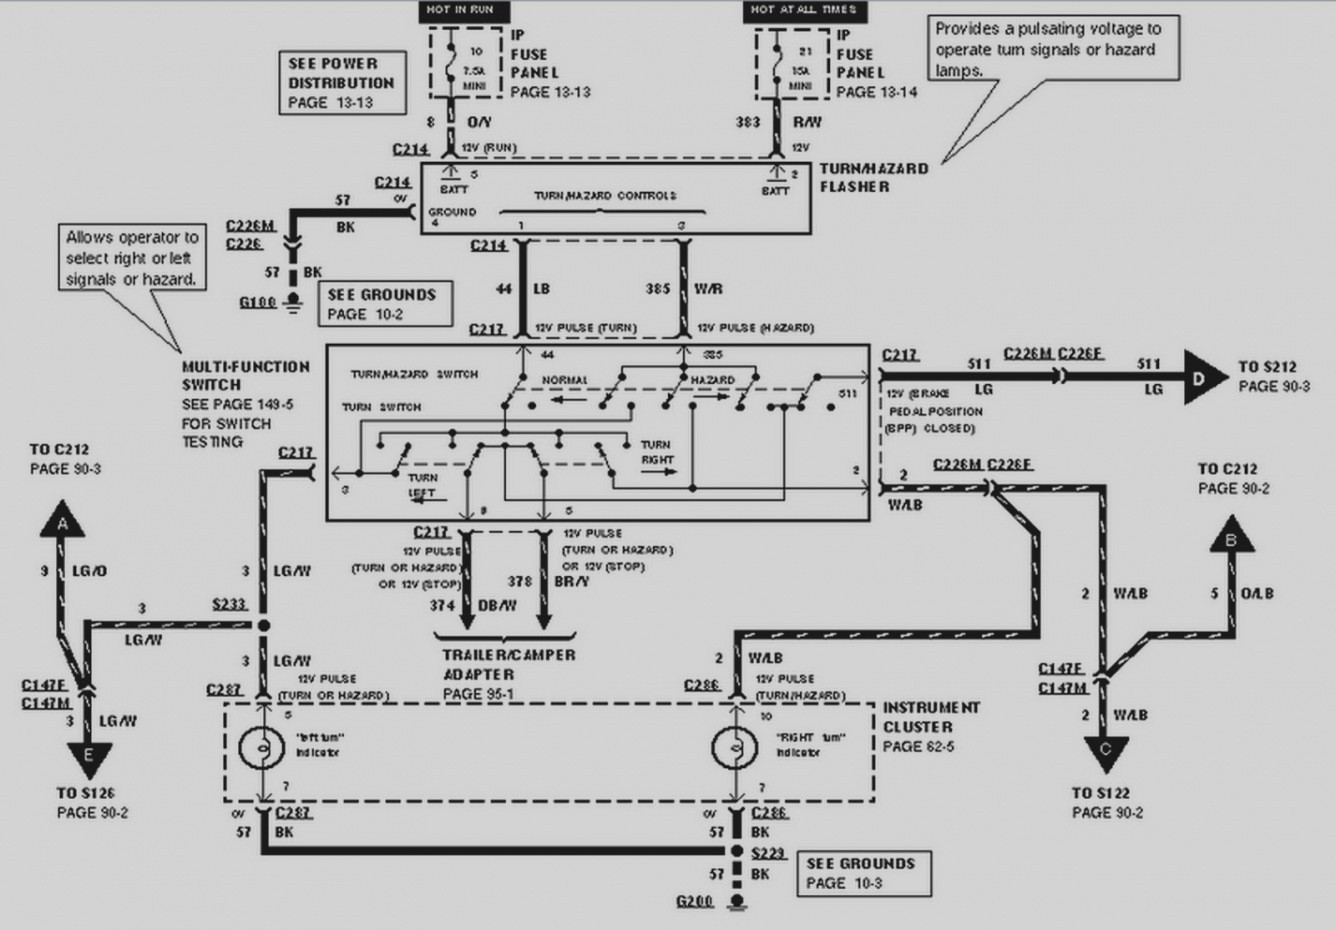 hight resolution of 2002 ford explorer fuse diagram pdf trusted wiring diagram 2001 explorer fuse panel diagram 05 ford